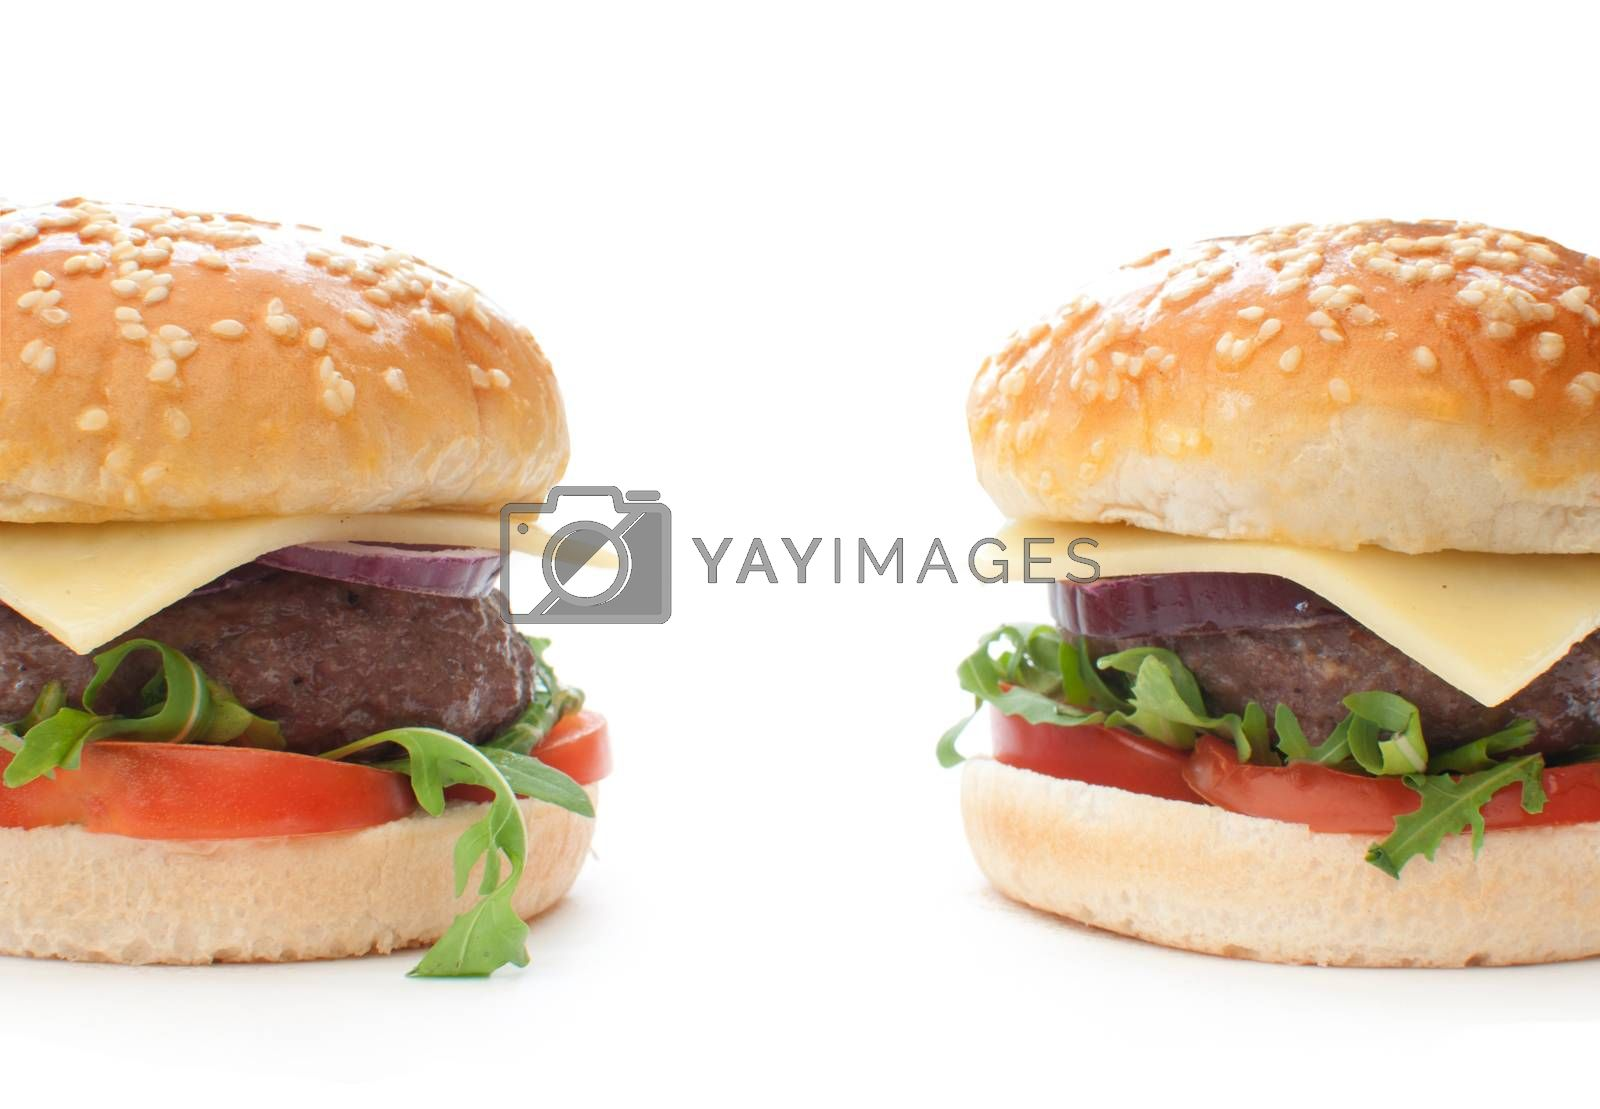 Royalty free image of Cheeseburgers  by unikpix